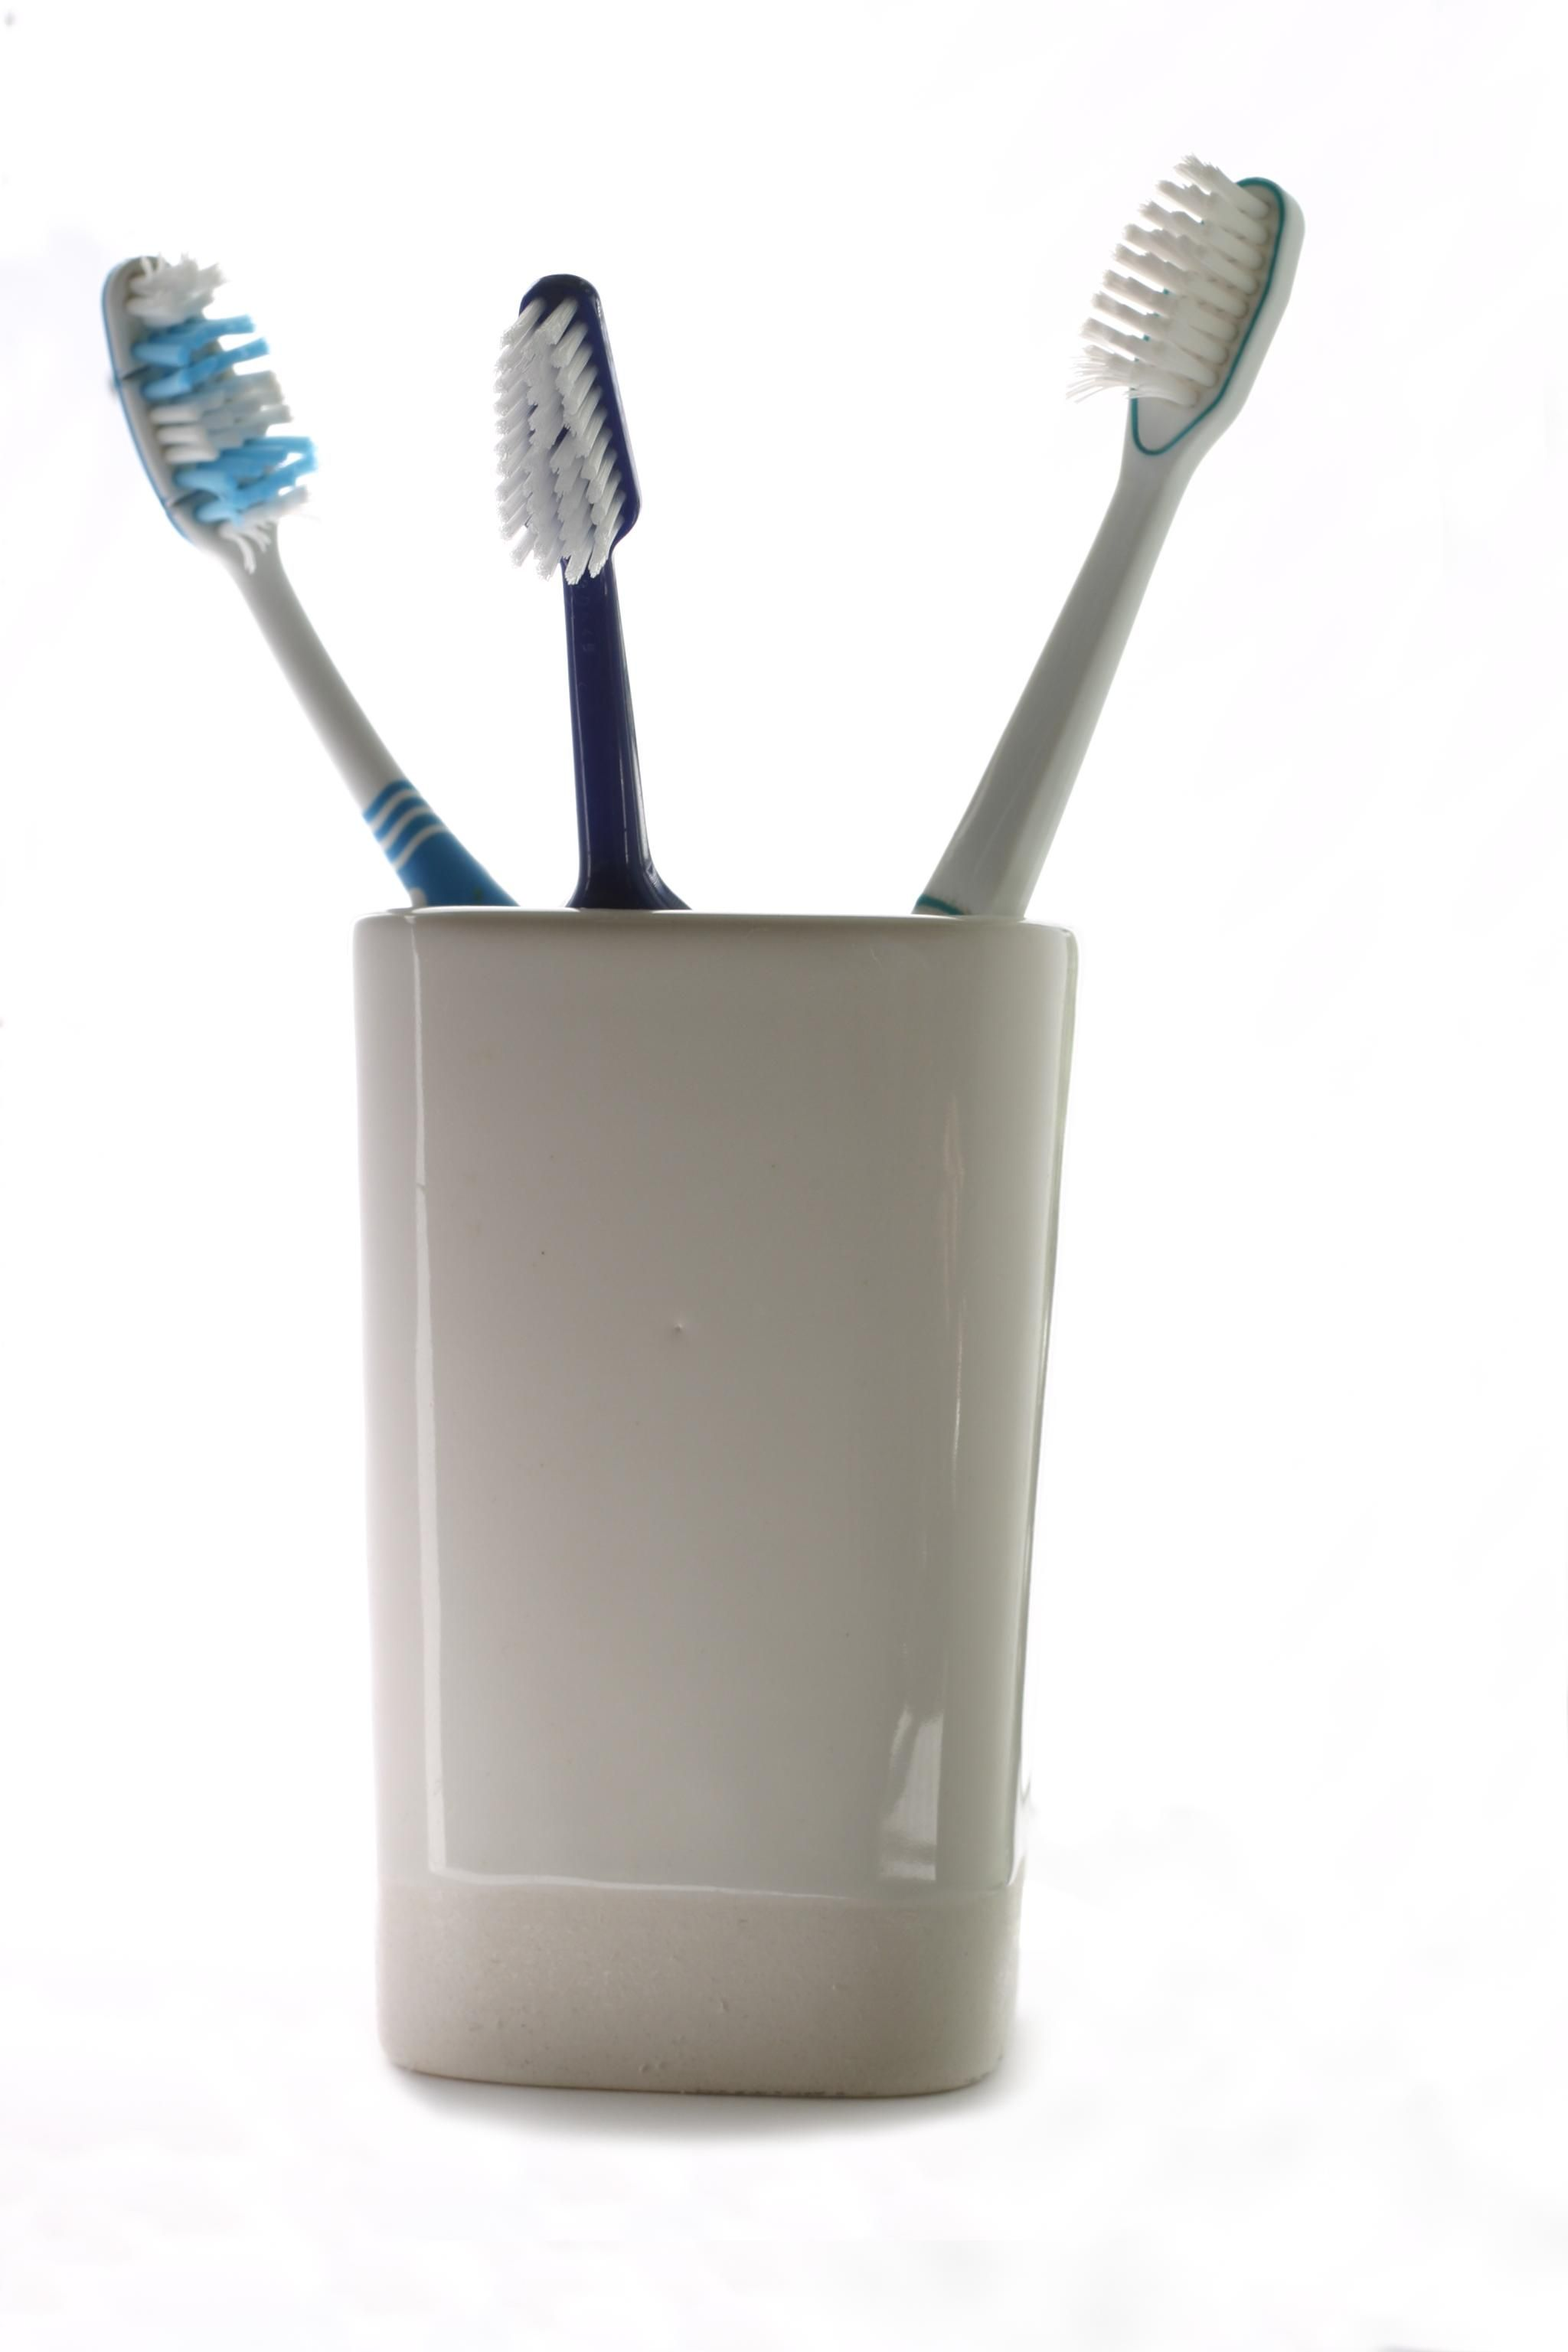 Important information about toothbrushes brushing teeth